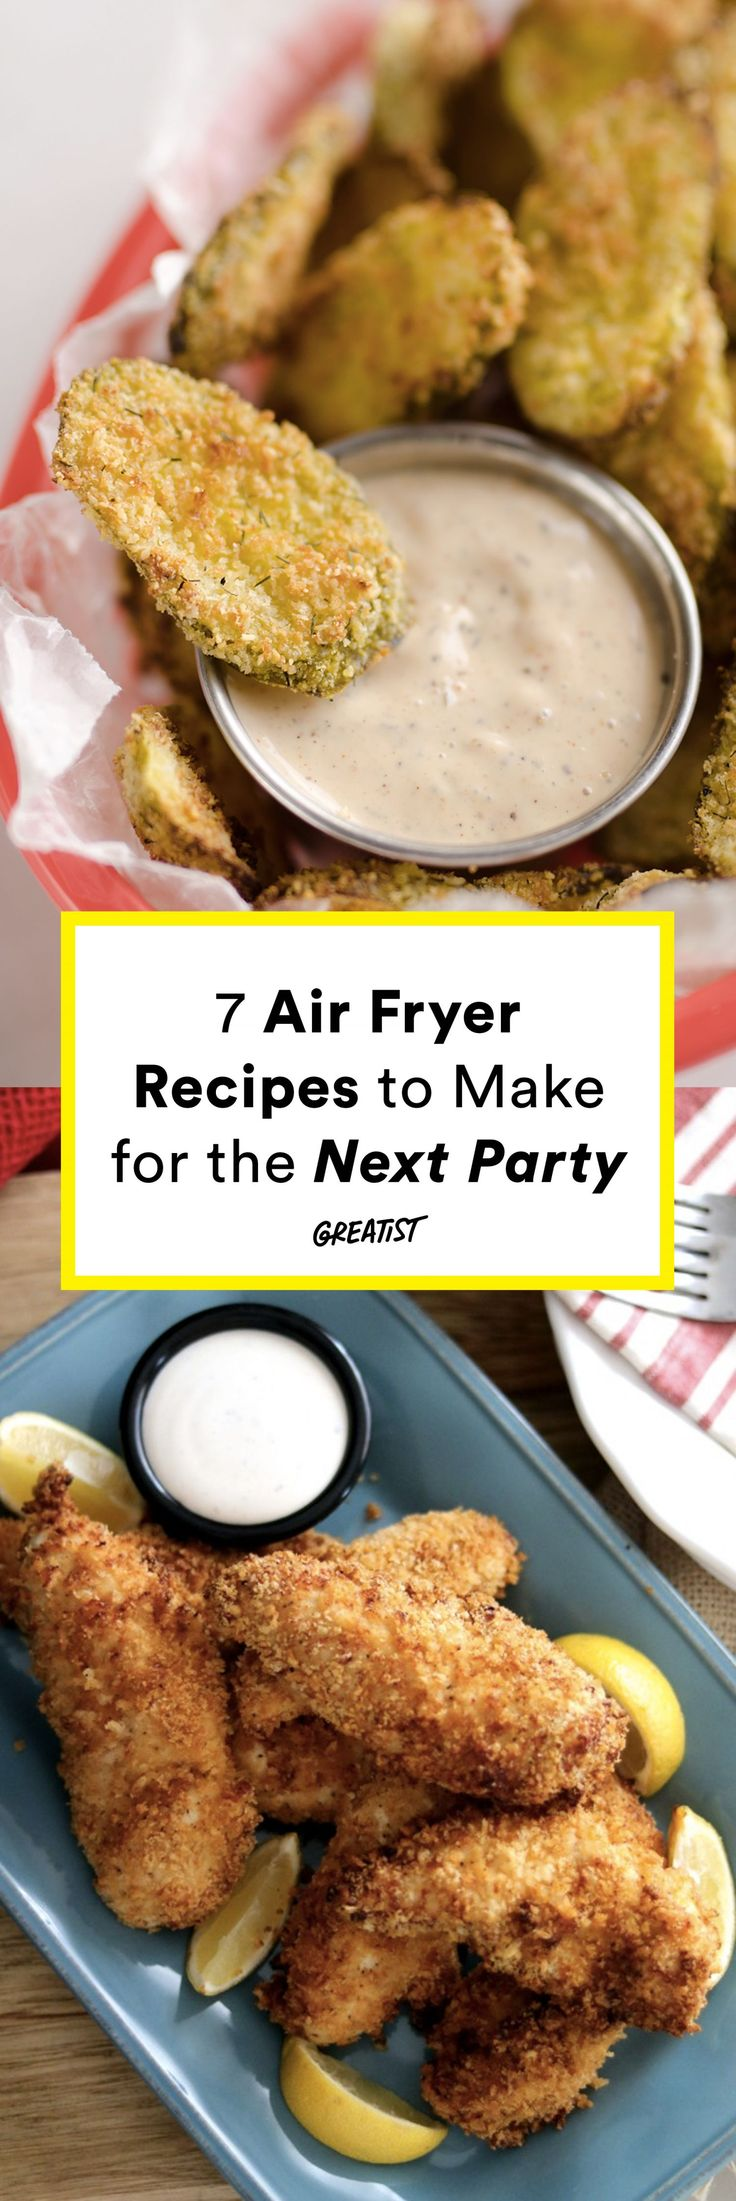 Including fries, duh. #greatist https://greatist.com/eat/air-fryer-recipes-that-make-the-best-party-foods